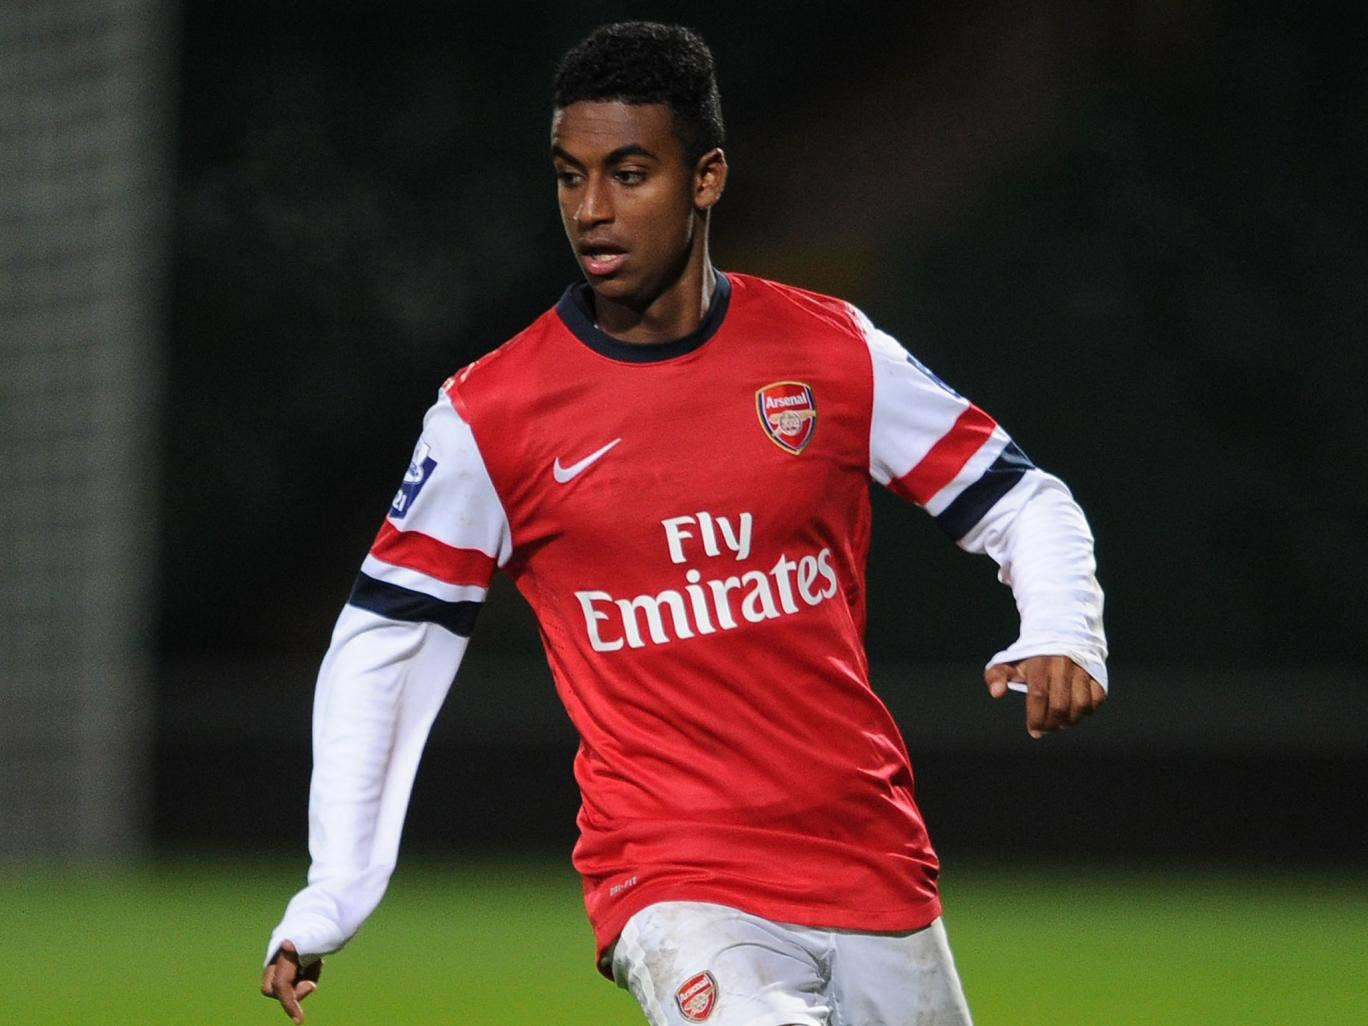 Gedion Zelalem makes a pass during Arsenal's U21 match against Norwich U21s at Carrow Road in November